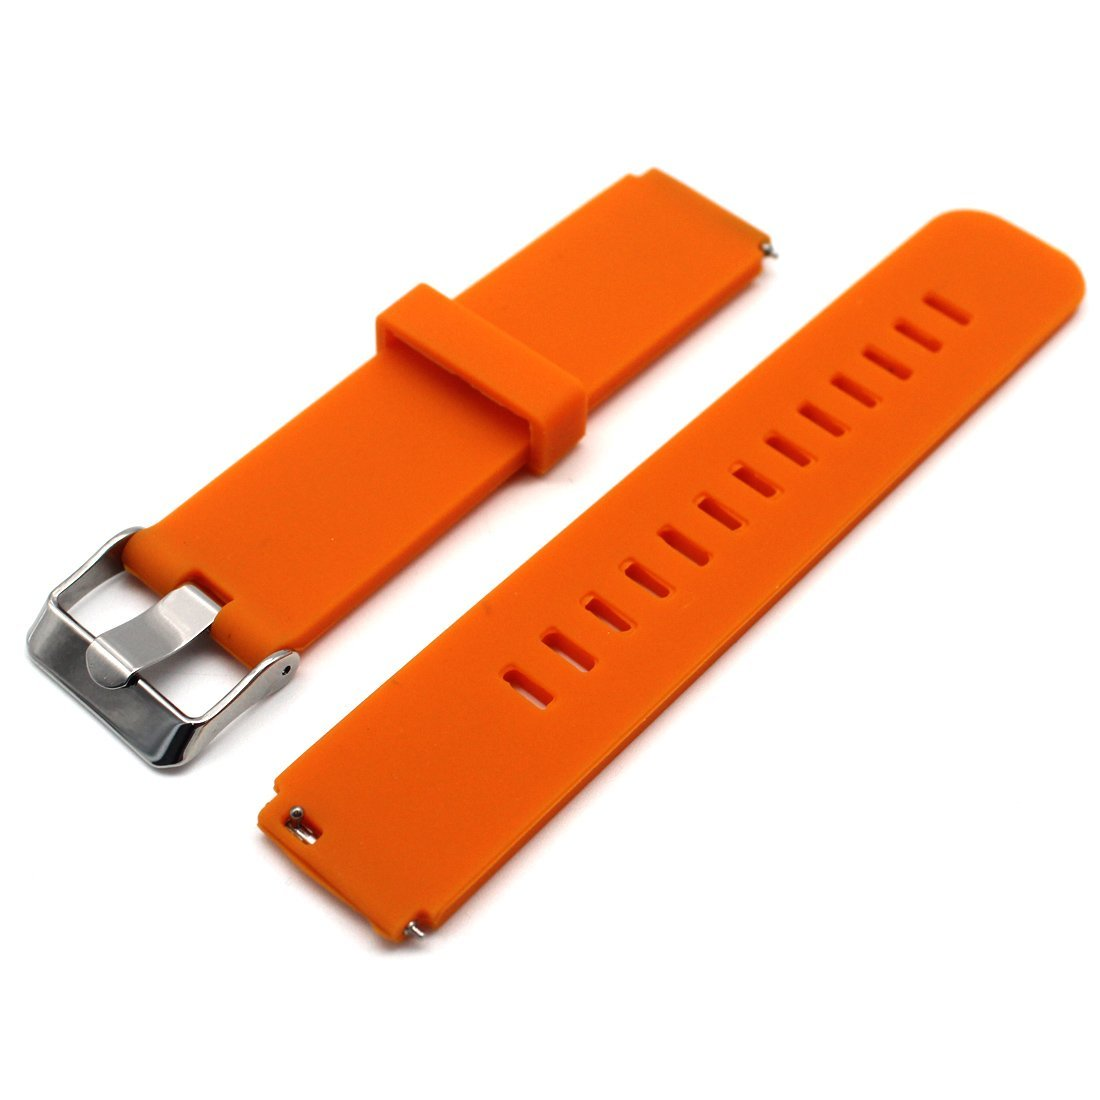 Huawei Fit Smart Fitness Watch Silicone Band - MOTONG Replacement Band For Huawei Fit Smart Fitness Watch,Come With Quick Release (Silicone Orange)